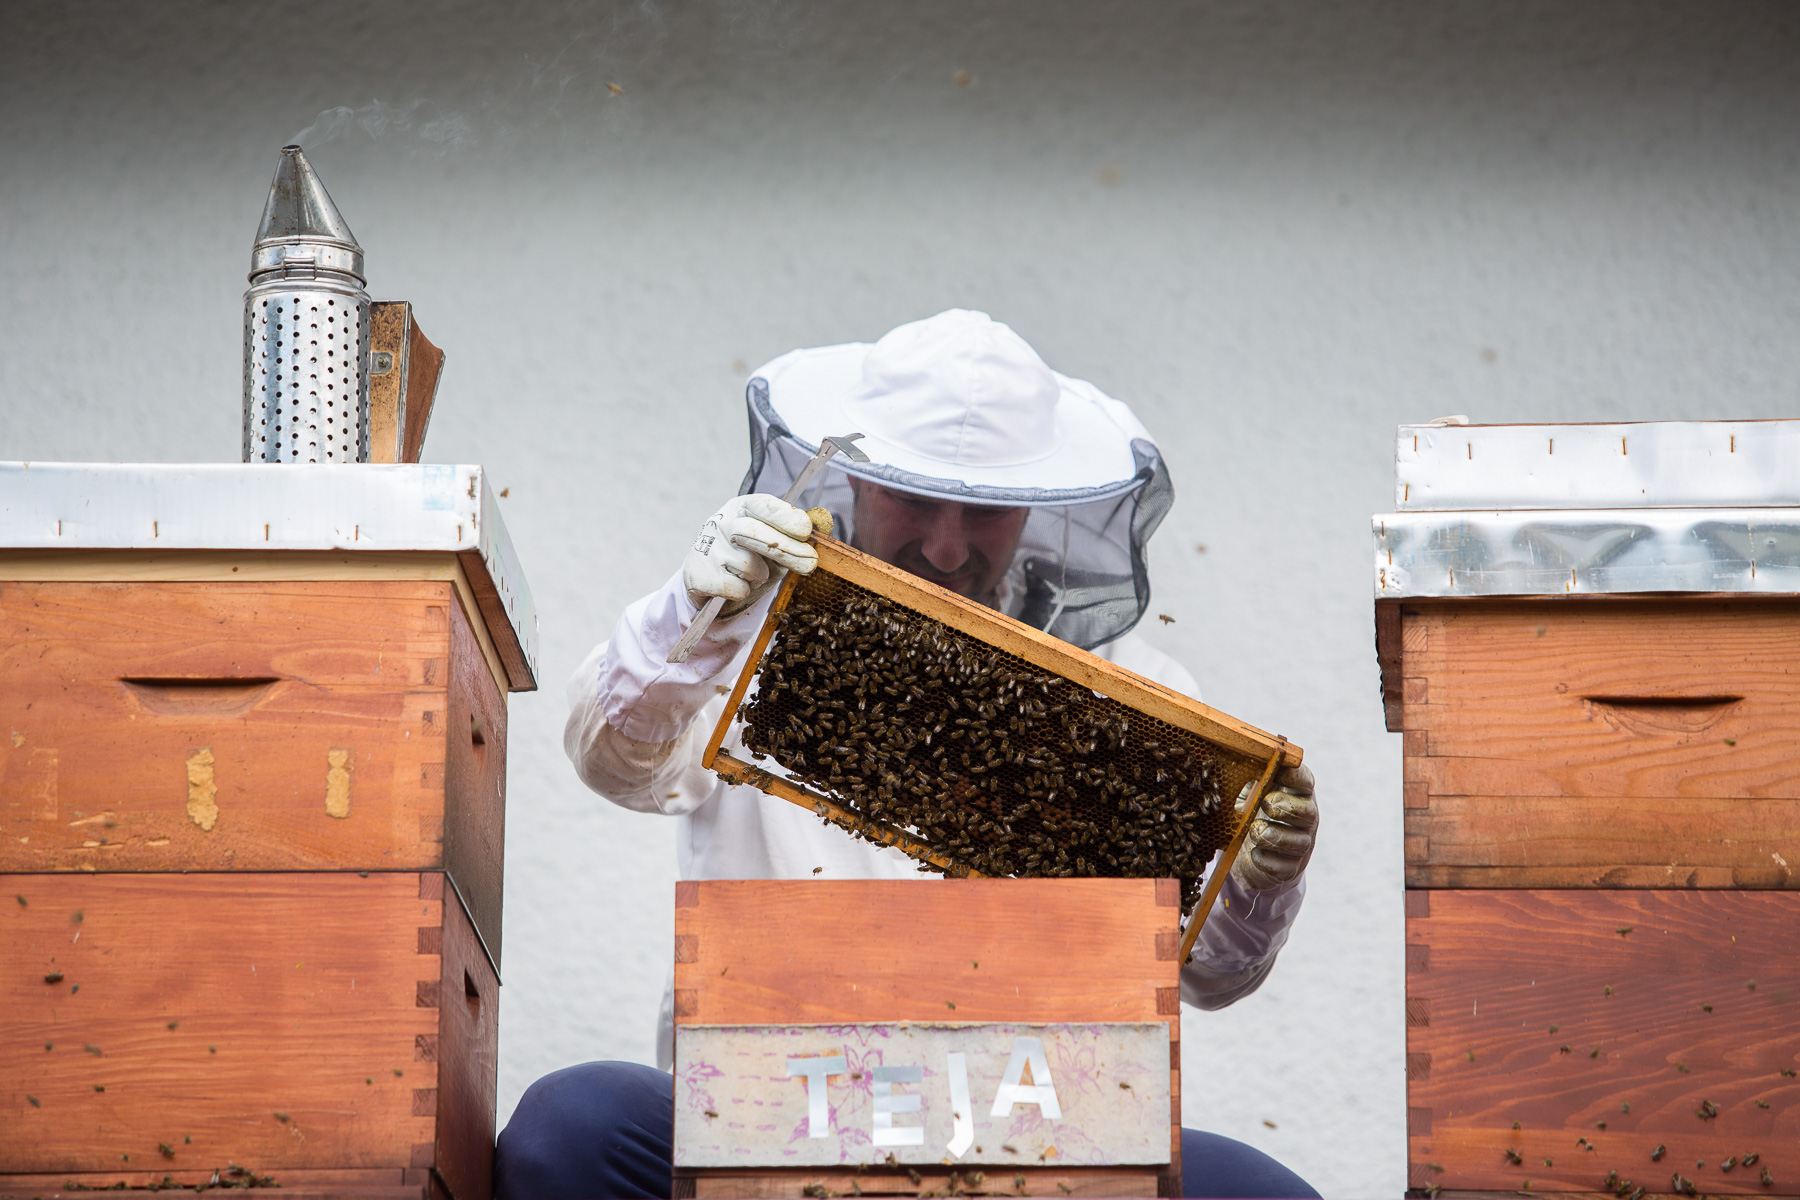 Trušnovec inspects the beehives on the roof of the entrance to Omega Air company in Ljubljana, one of several companies that rent hives from his society. It is popular to name the hives to define which bees symbolically belong to who, in this case the hive that carries the name Teja houses bees that belong to a daughter of an employee. The rent a hive service is booming, but keeps Gorazd extremely busy maintaining the hives of clients. The honey they produce belongs to the clients.